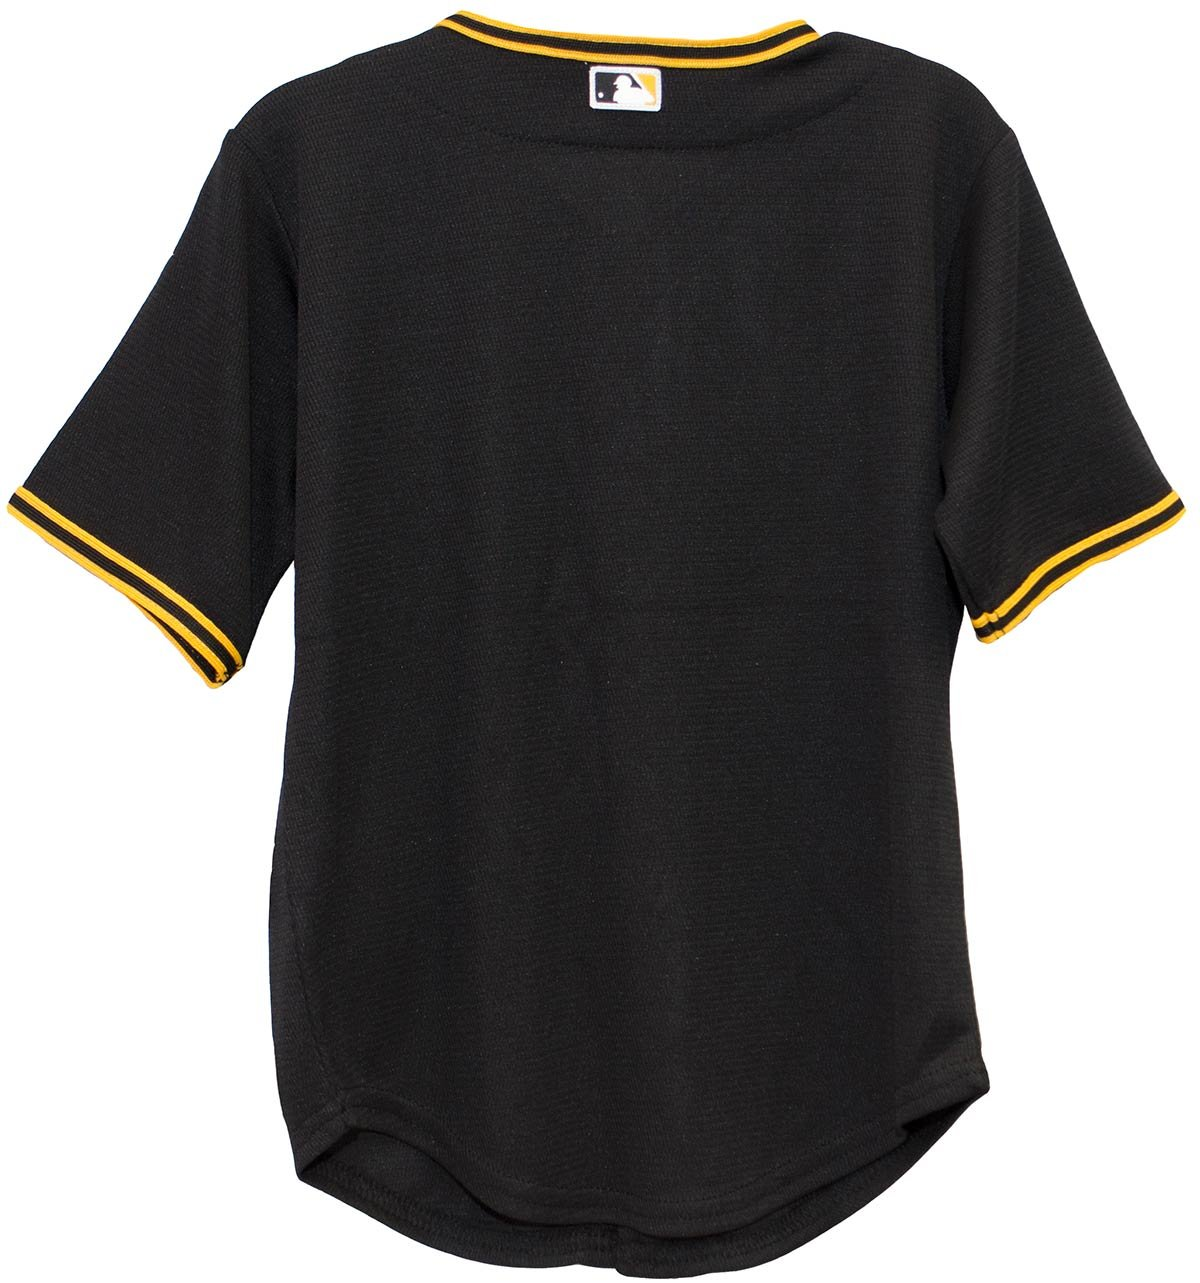 3257c75f8 Amazon.com   Pittsburgh Pirates MLB Infant Cool Base Alternate Team Jersey  Black (Infant 12 Months)   Sports   Outdoors